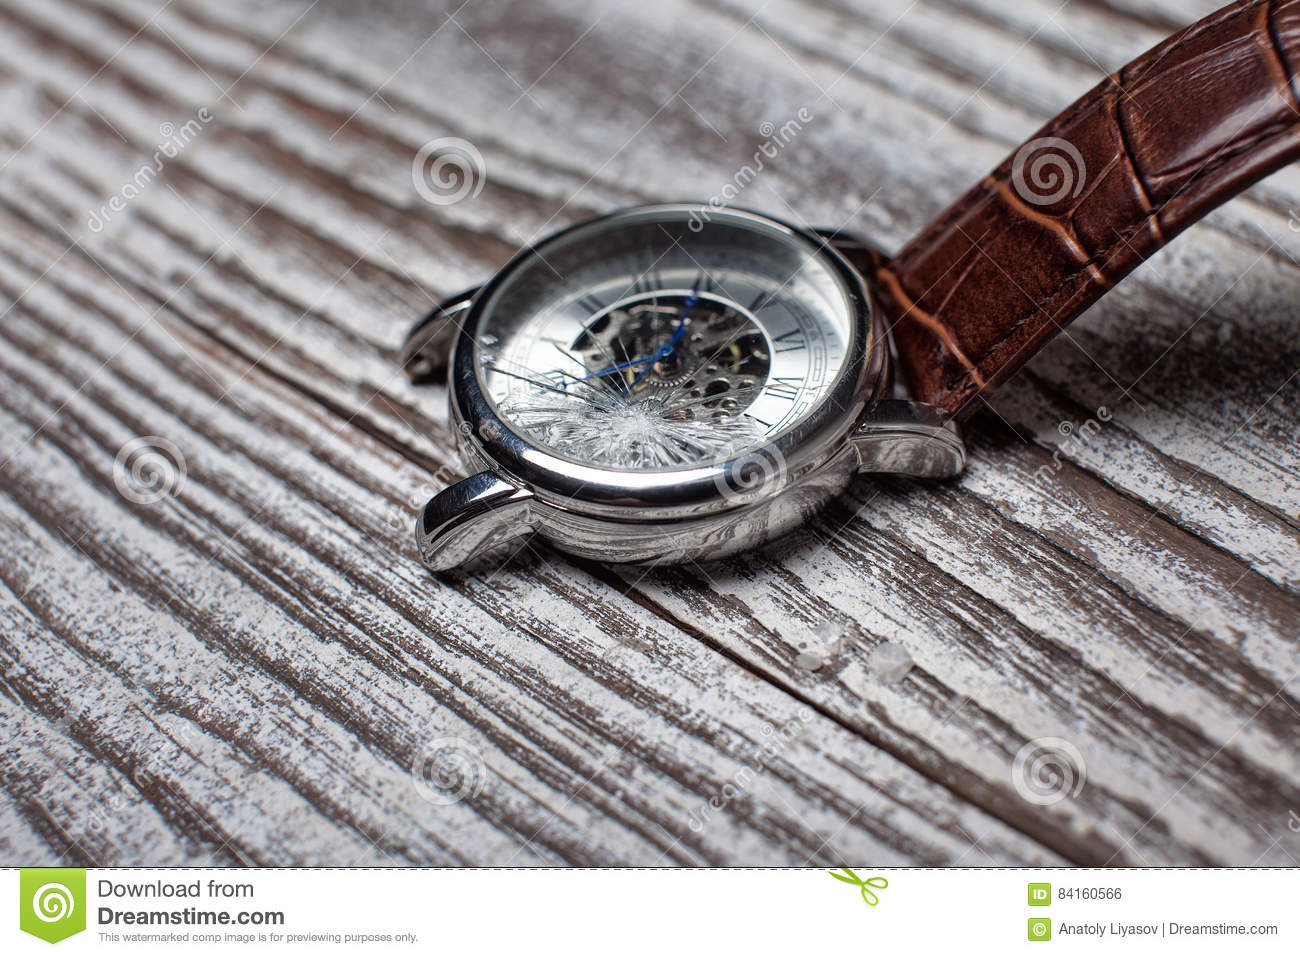 Watches with cracked glass